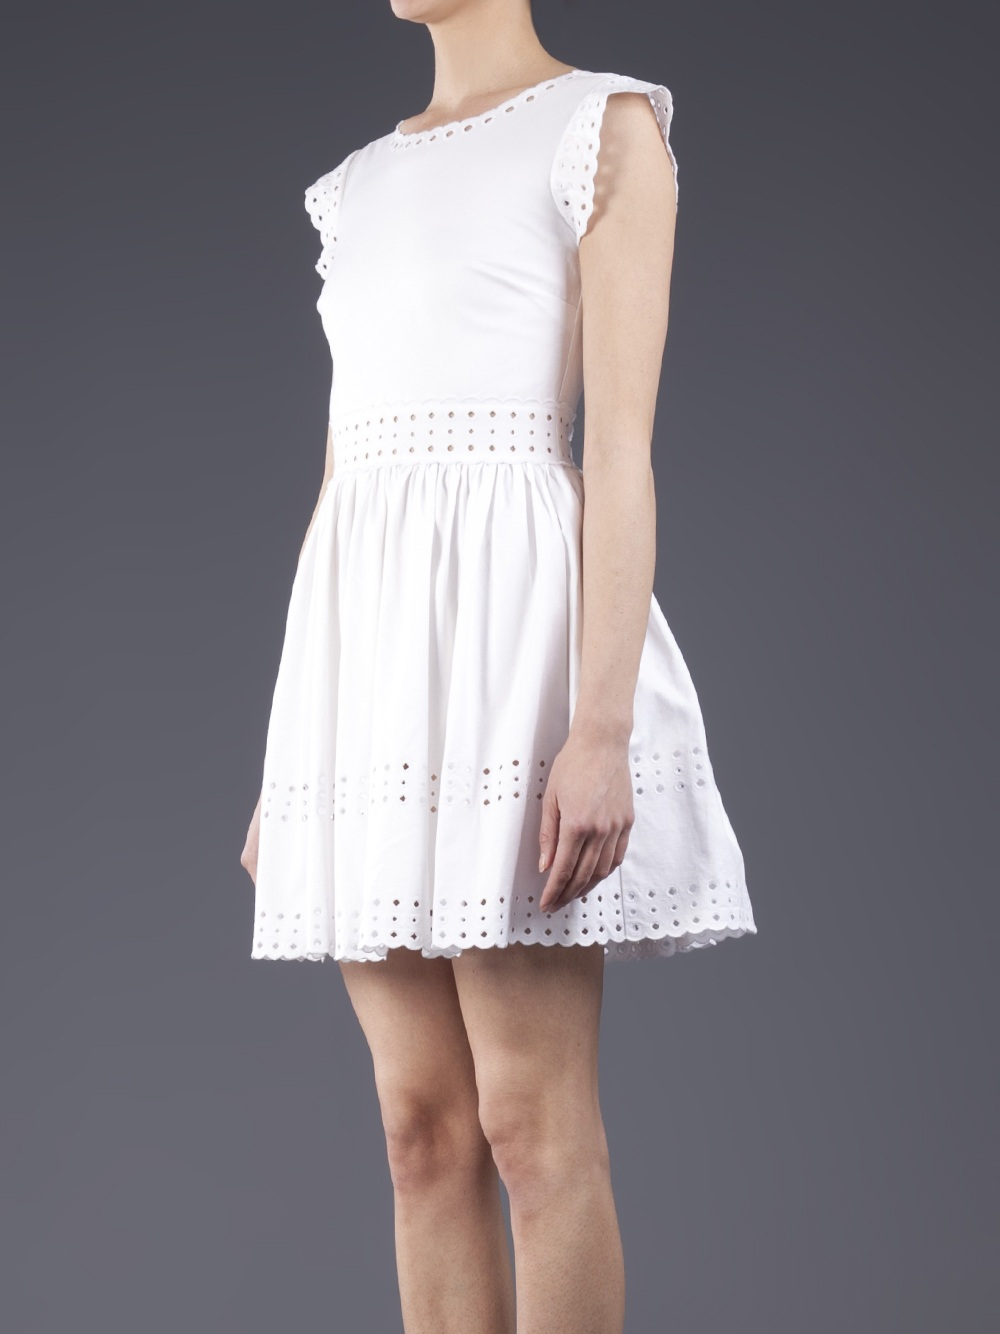 Red valentino embroidery detail dress in white lyst